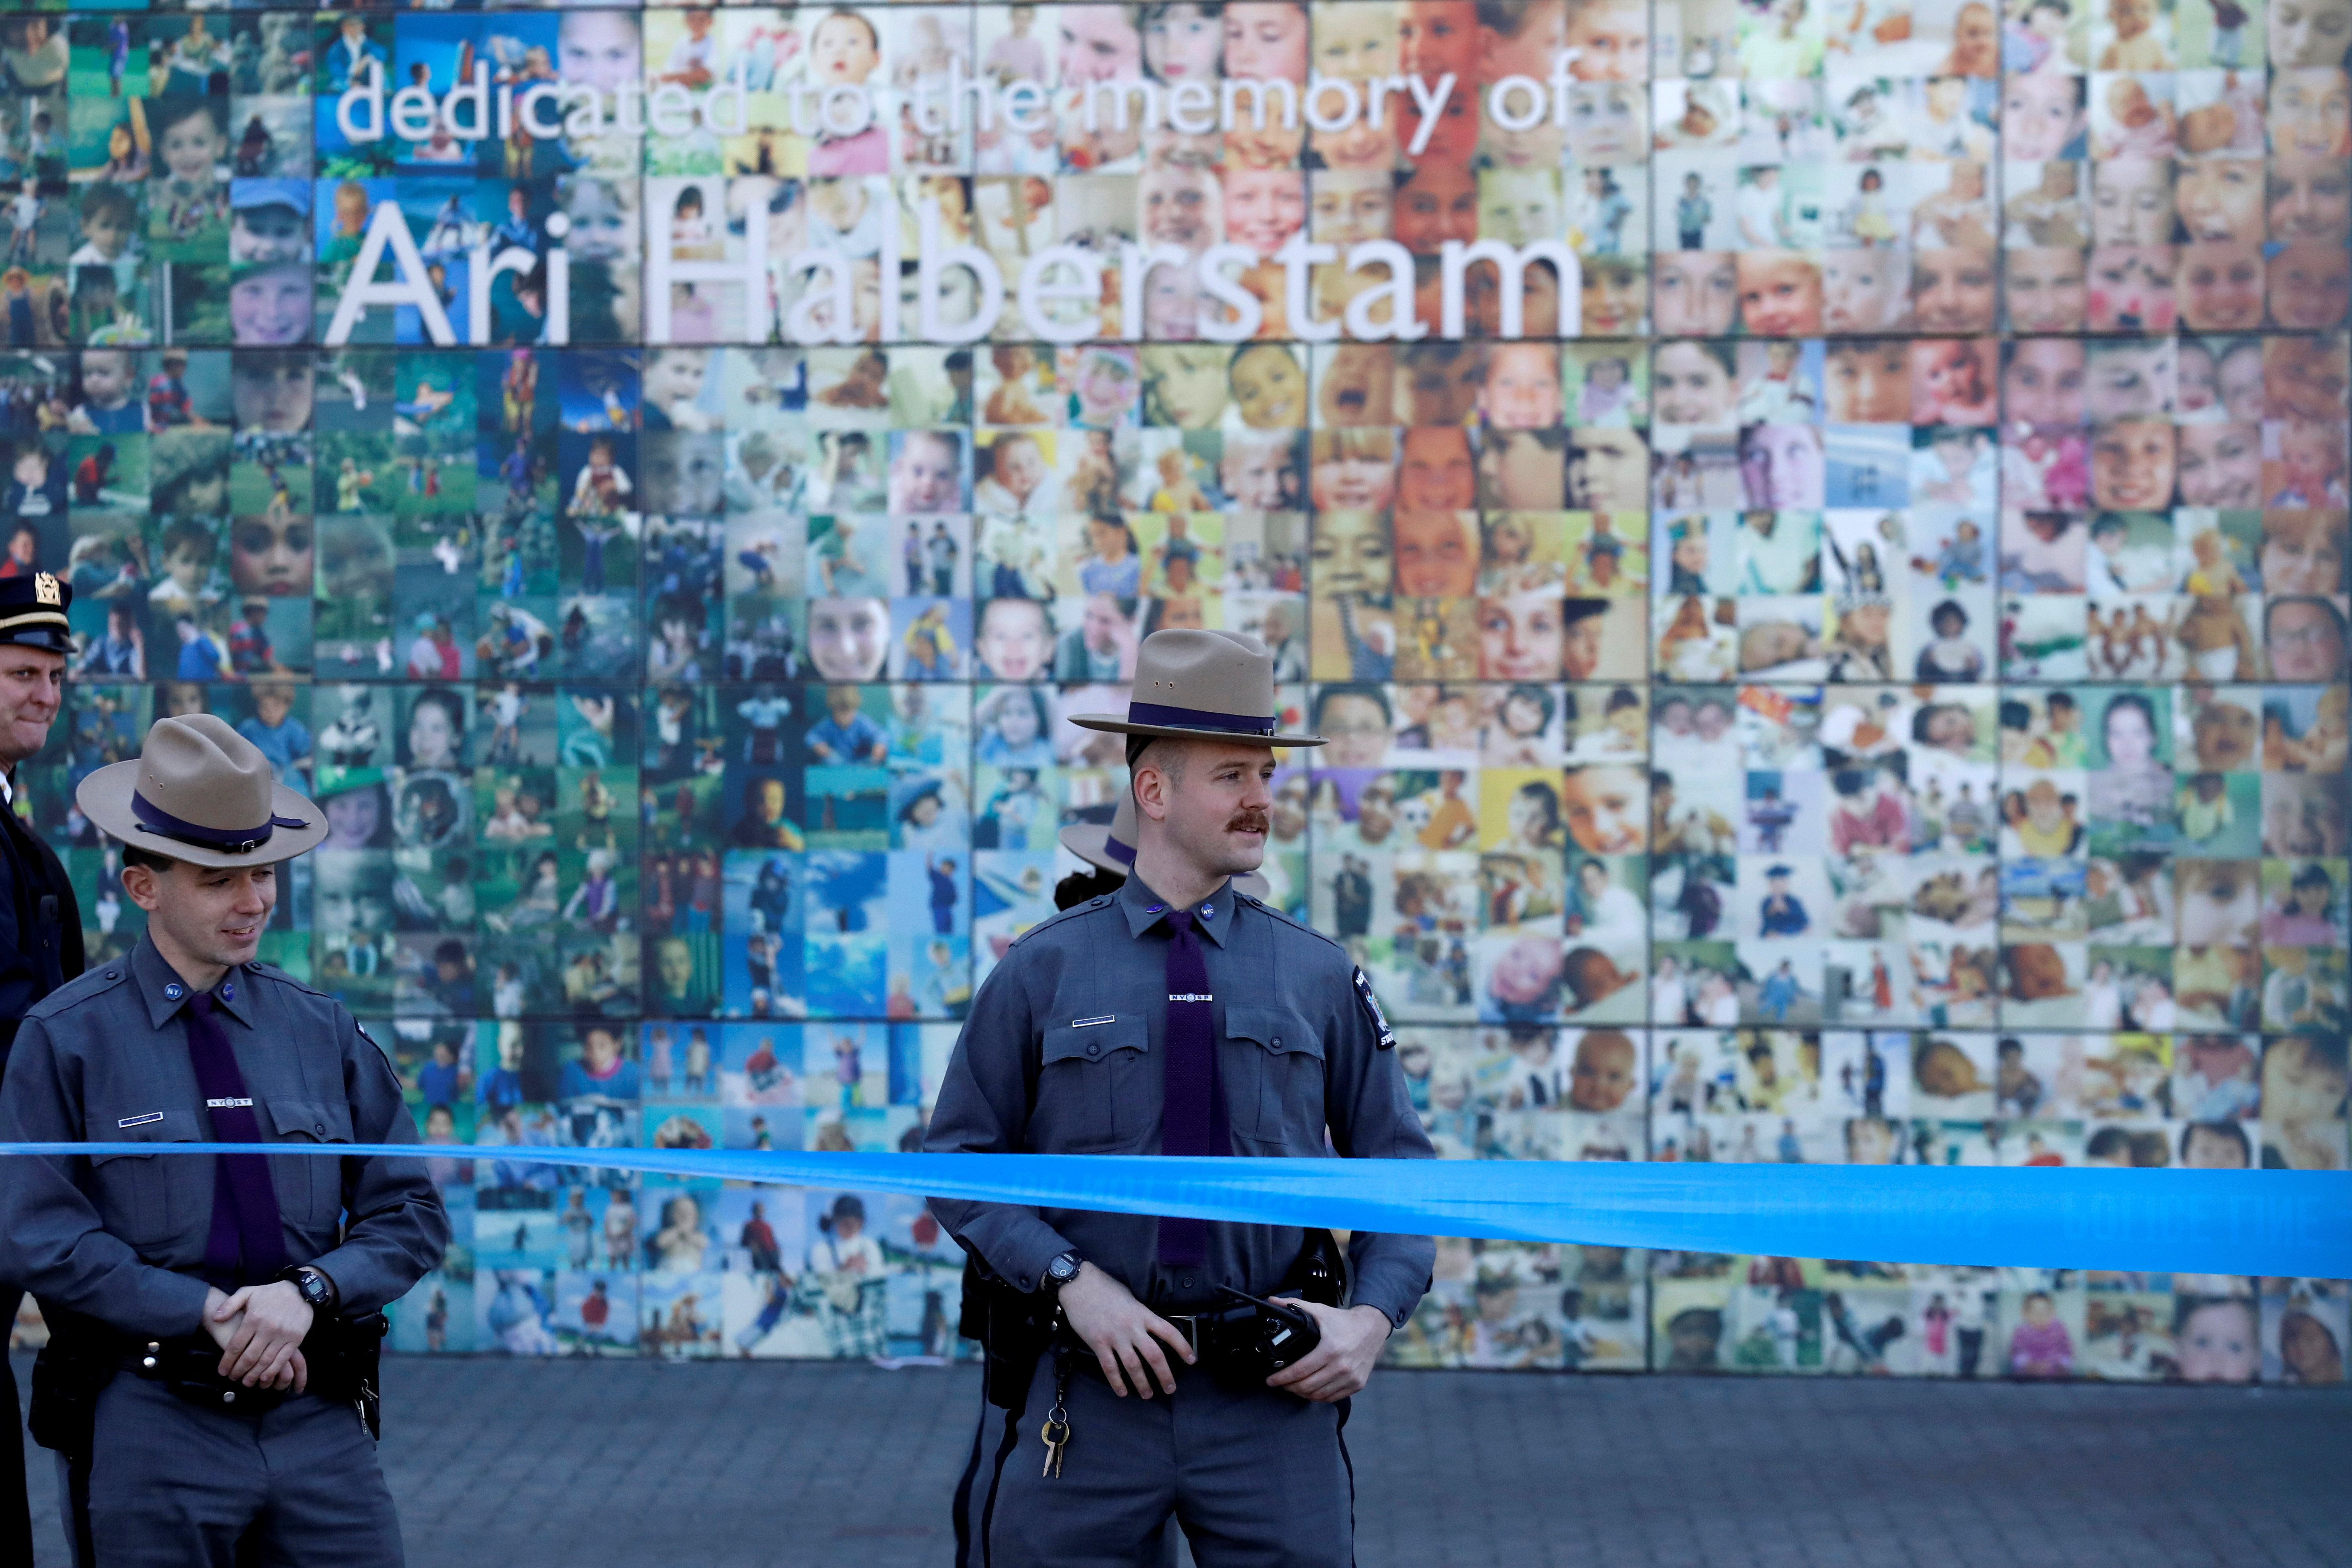 New York State Police officers stand outside The Jewish Children's Museum following a bomb threat in the Brooklyn borough of New York City, U.S. March 9, 2017. REUTERS/Brendan McDermid